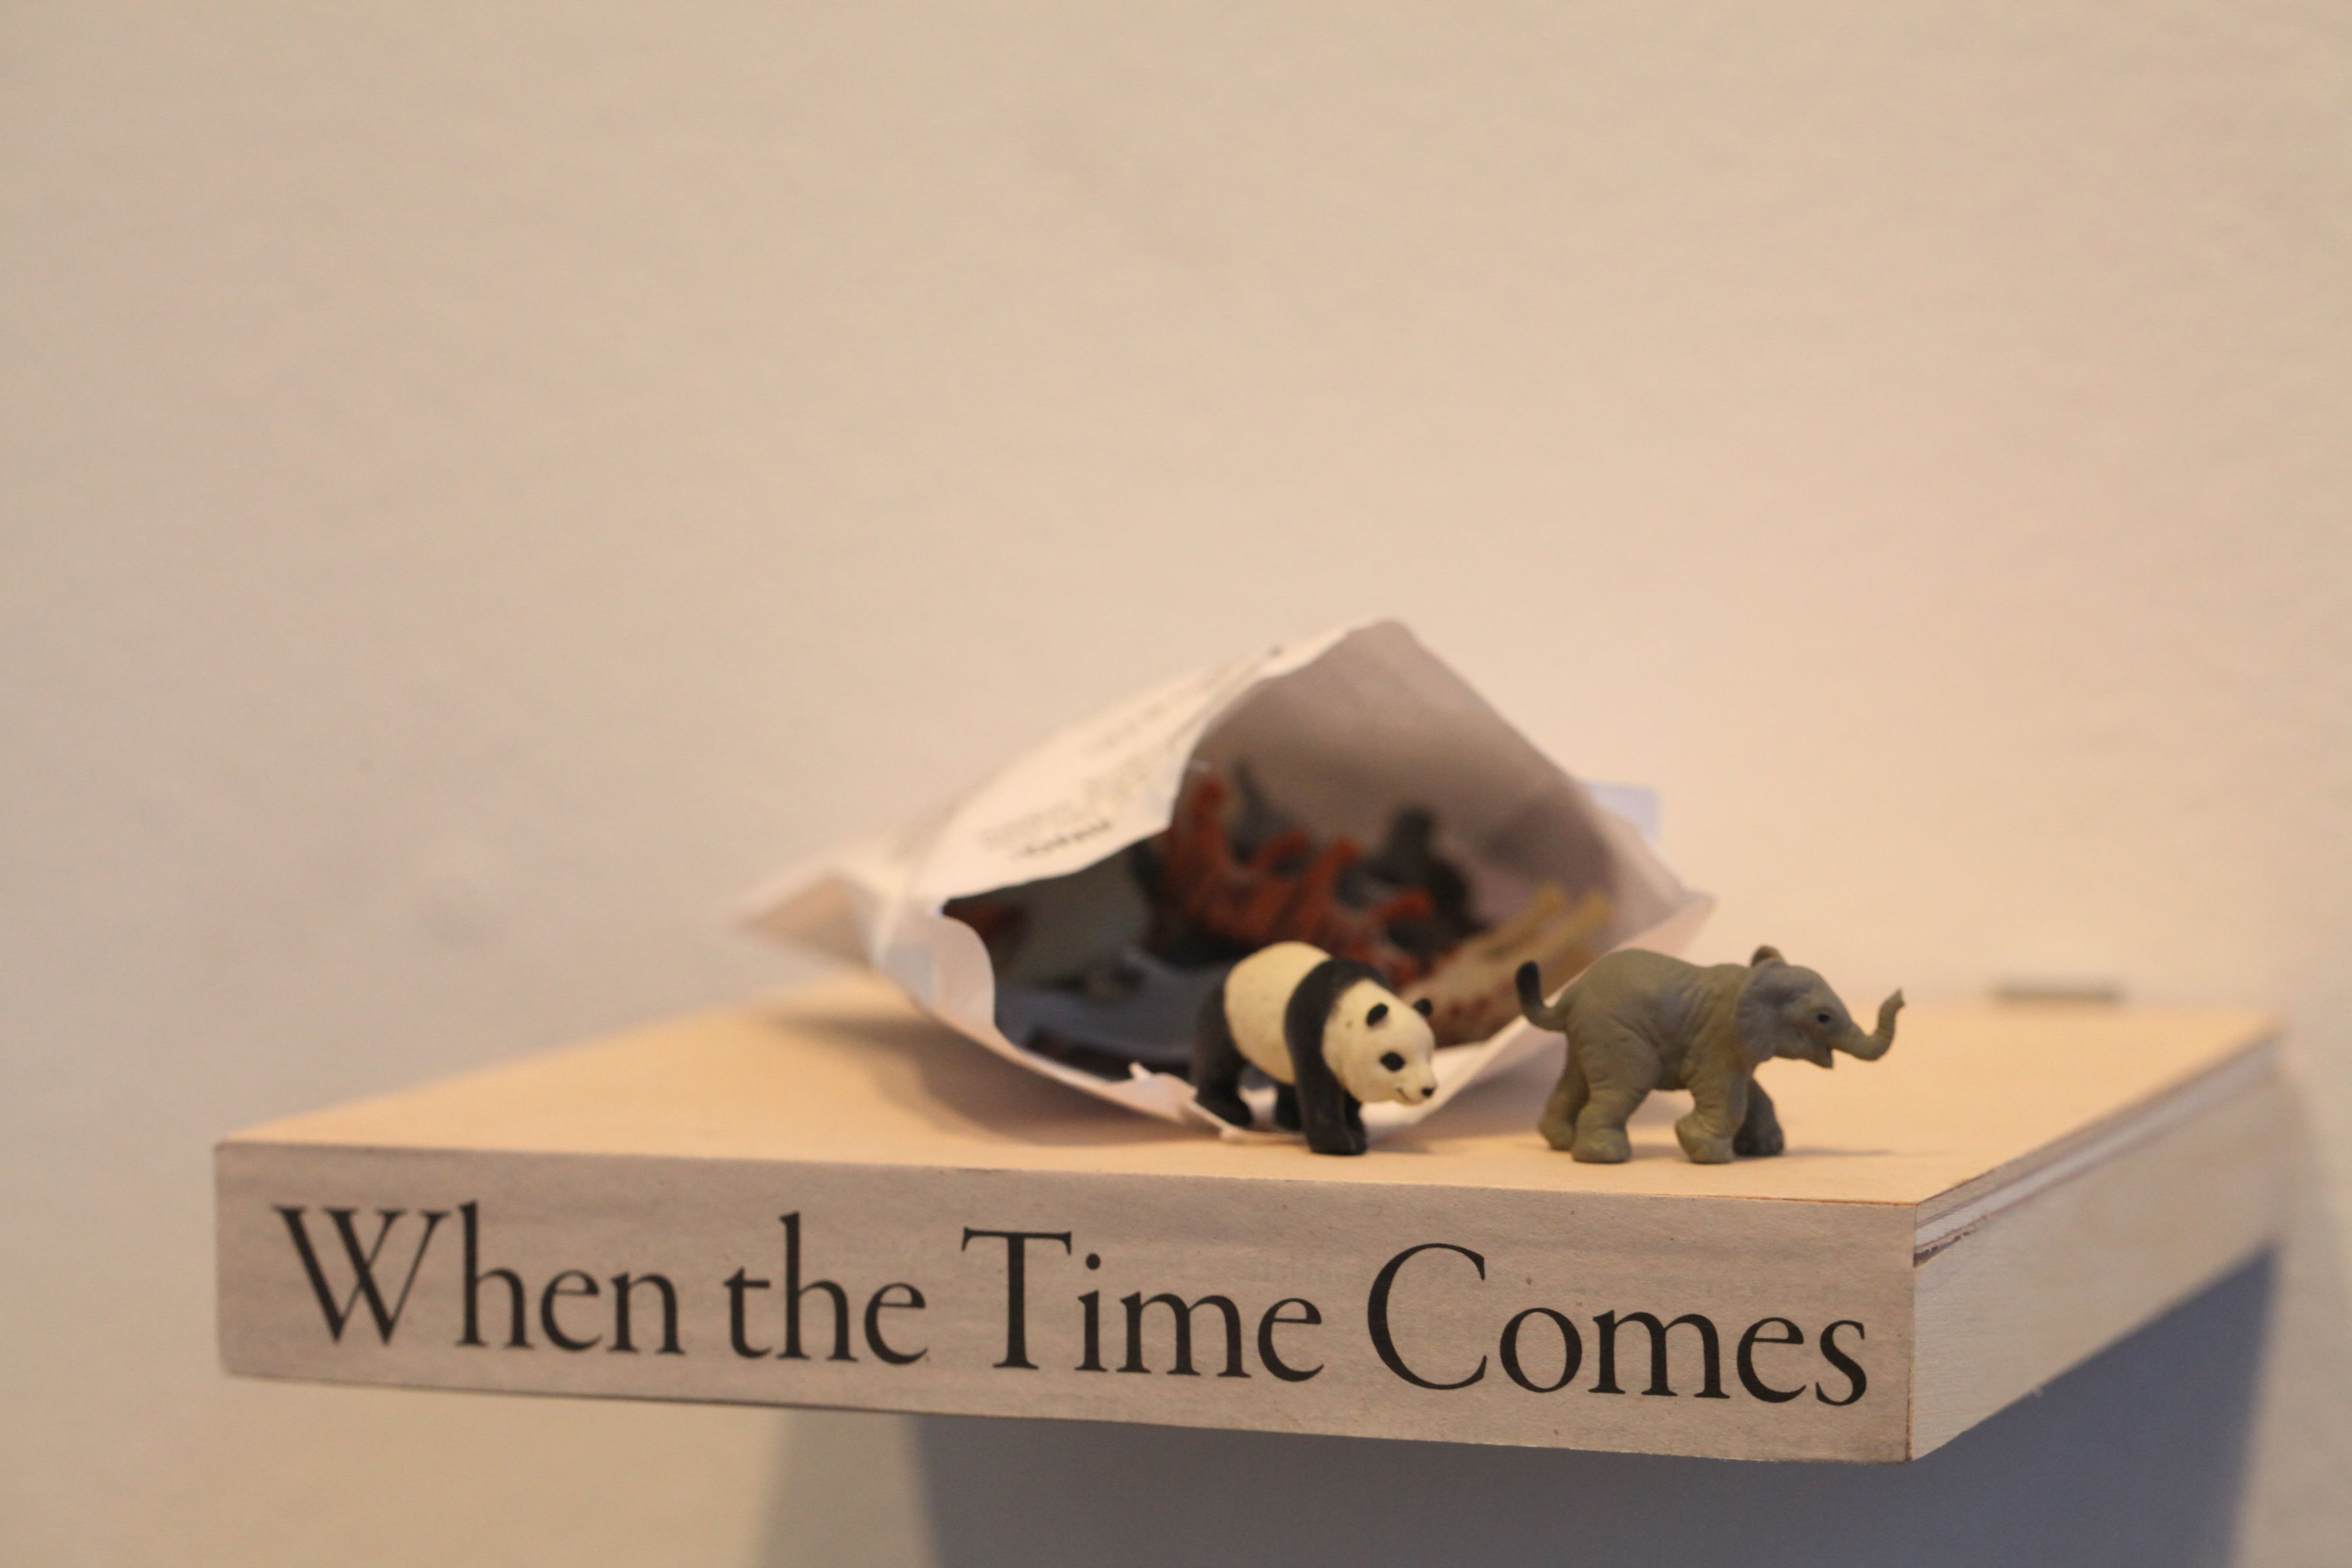 When the time comes - A group of landscape works from The Curiosity Boxç•¶æ™'刻來臨 - 好奇盒裡一些關於風景的創作